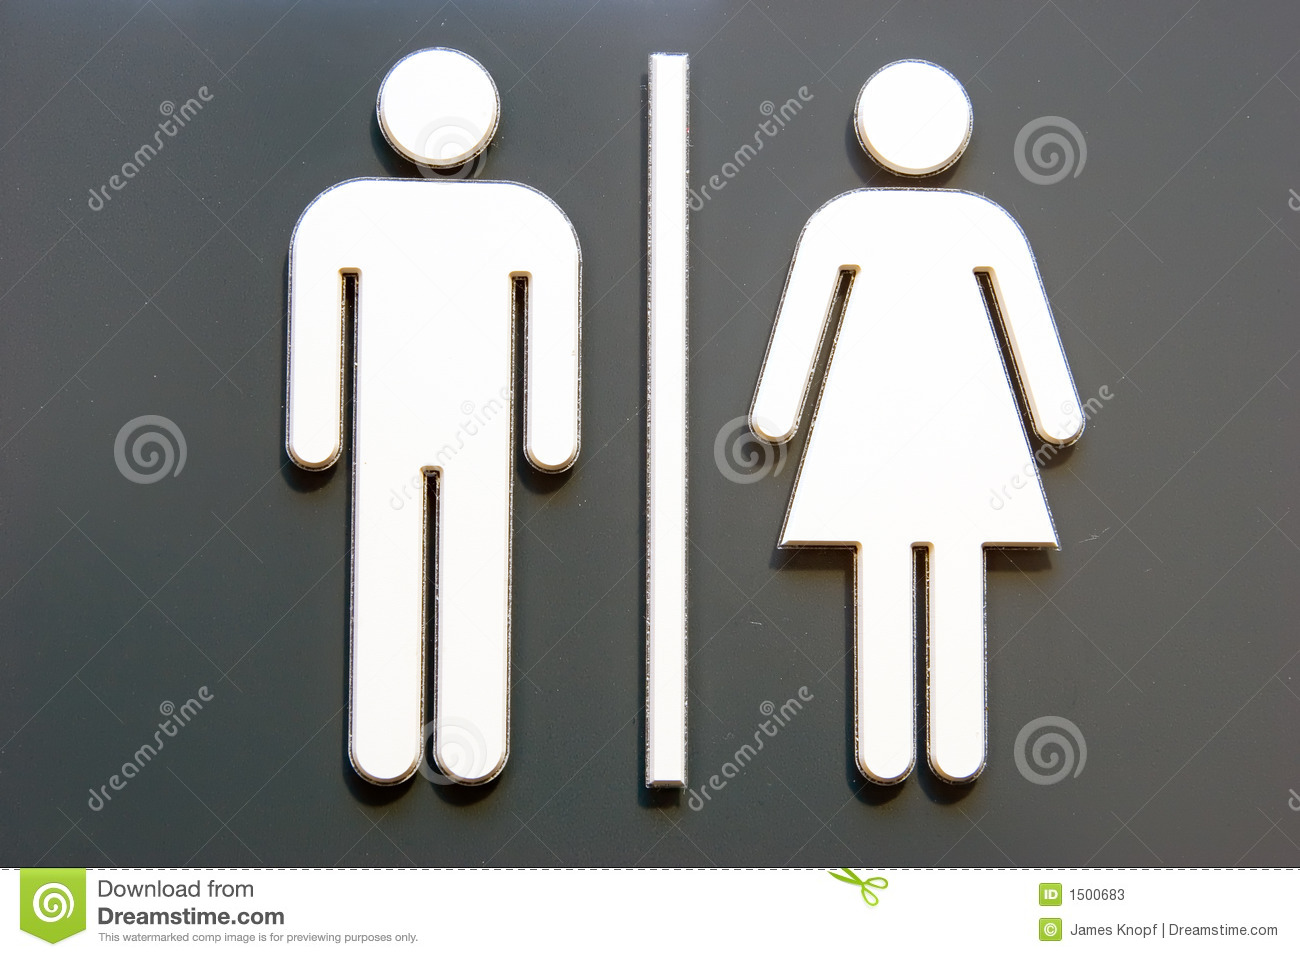 unisex door symbol stock photos image 1500683